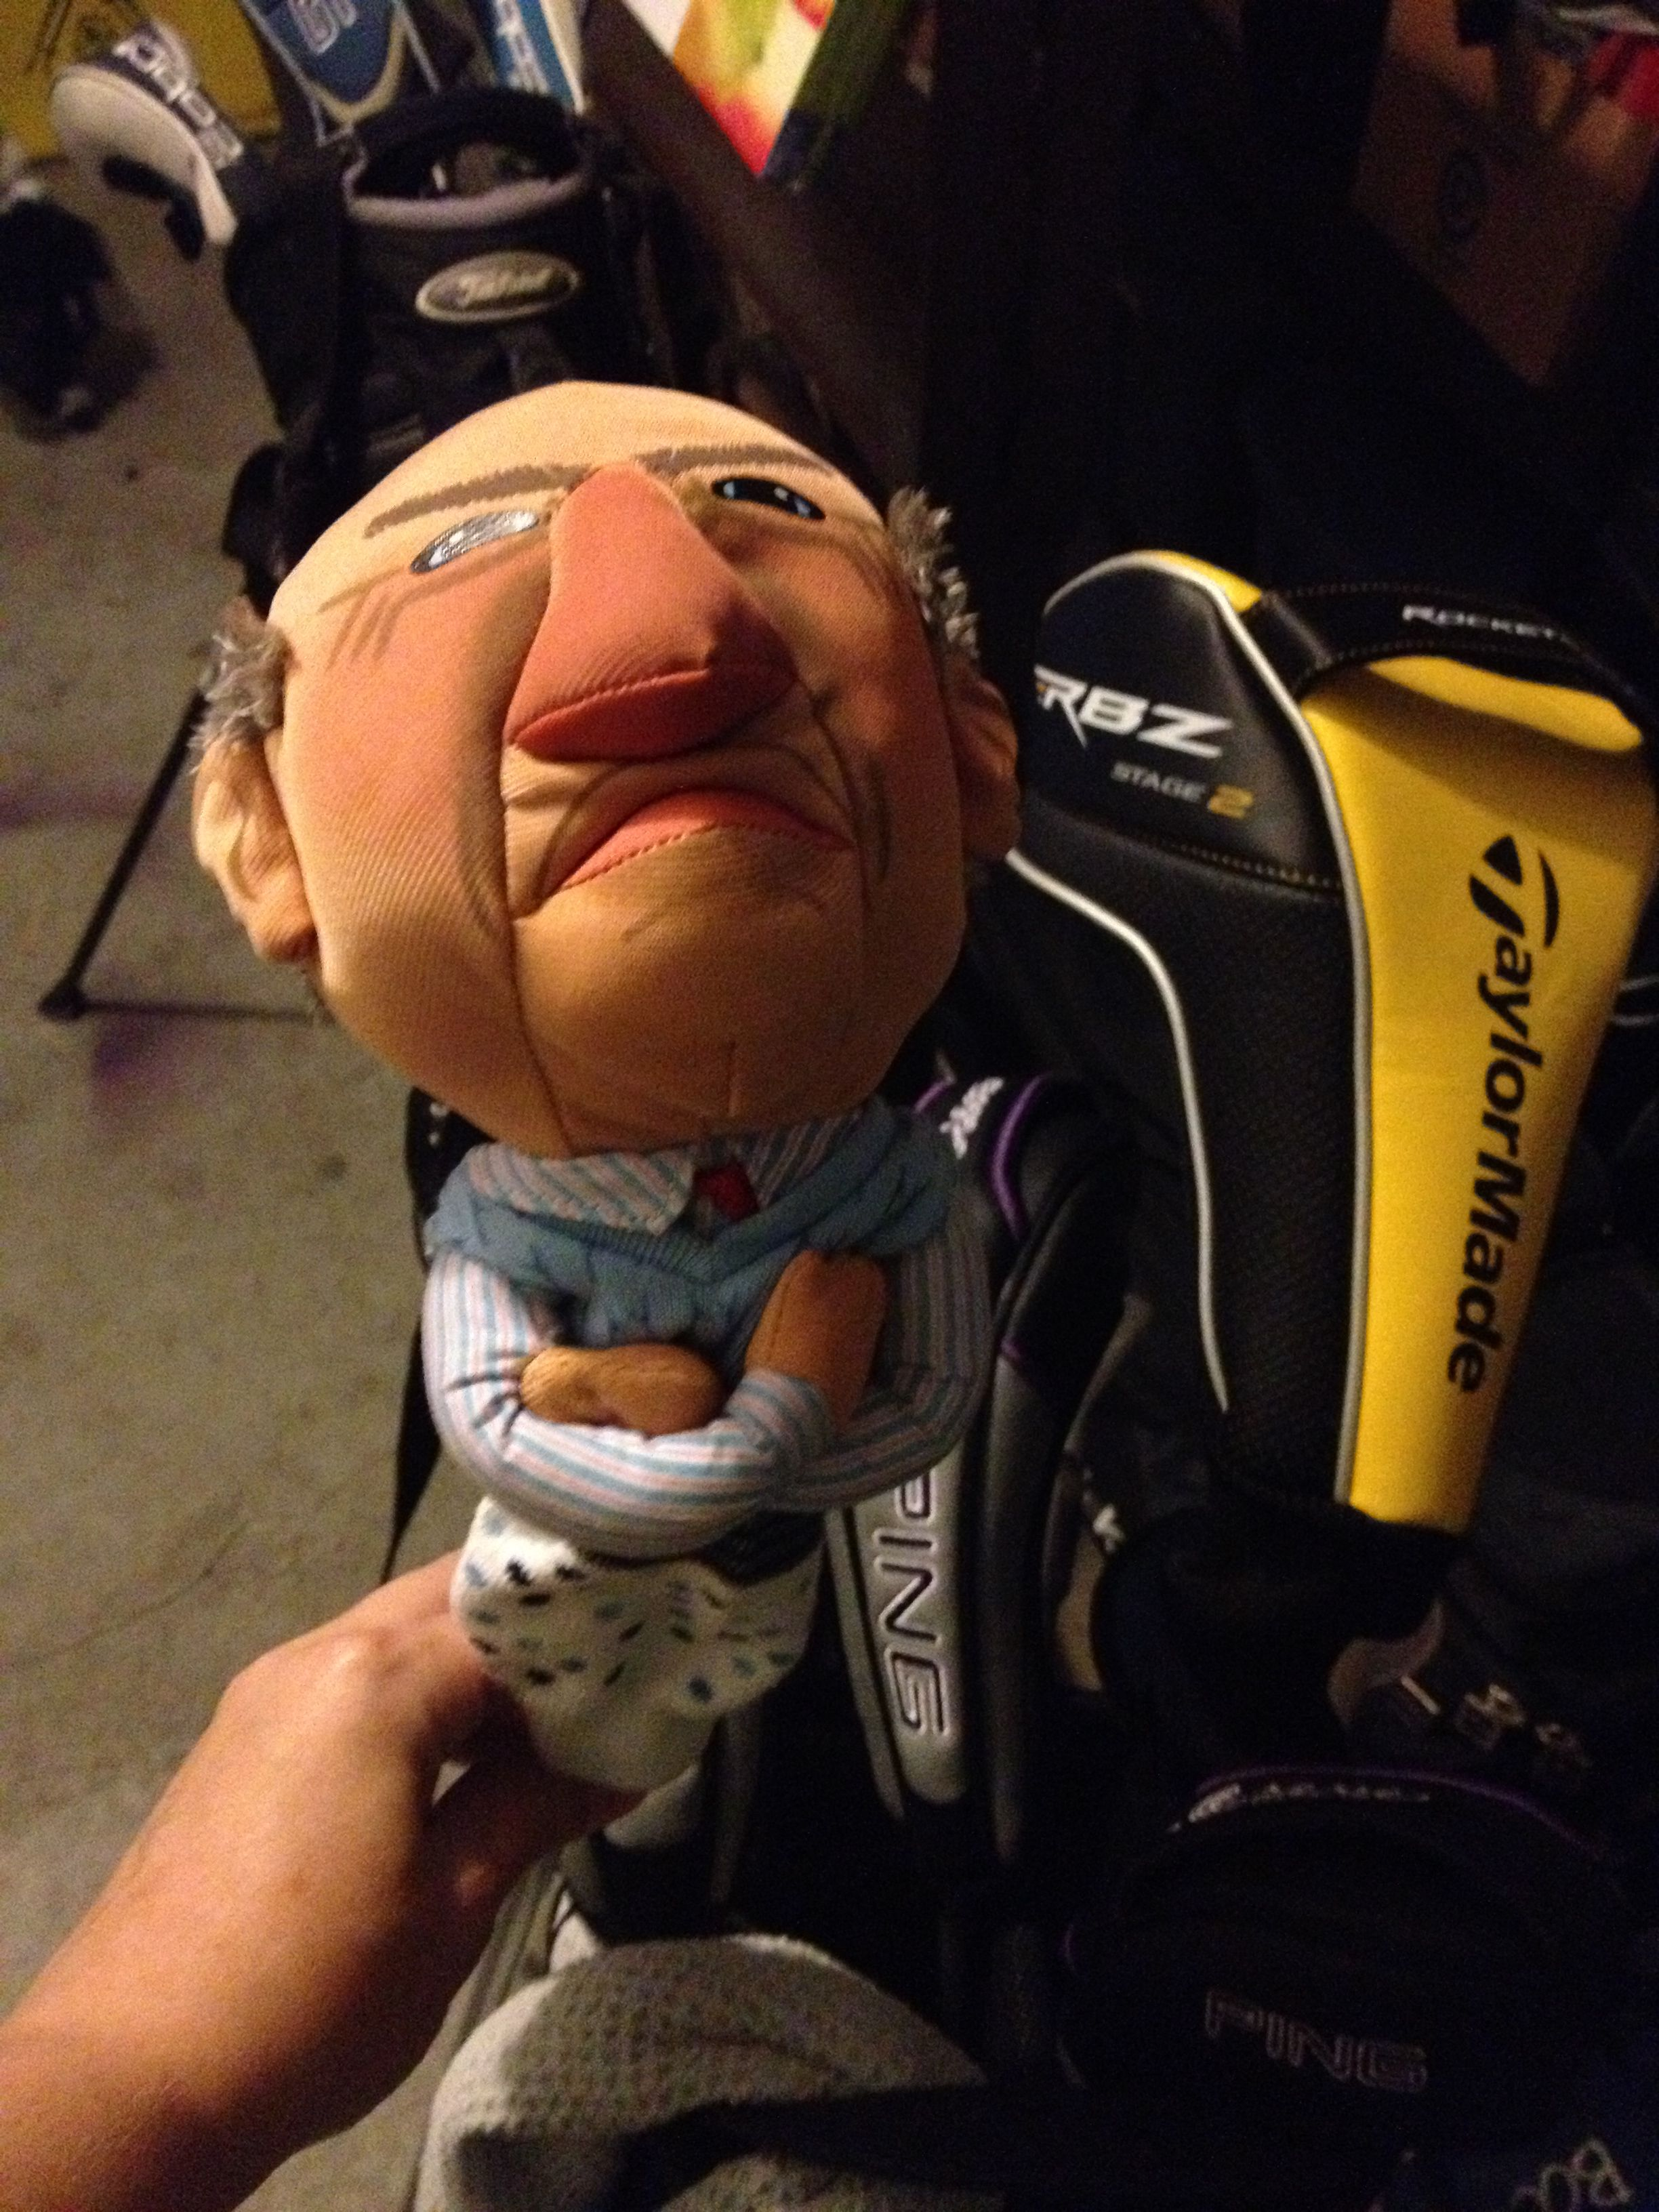 Golf Club Headcover Made From A Plush Doll This One Is Walter From Jeff Dunham S Puppet Comedy Act A Doll A Sock Golf Clubs Jeff Dunham Puppets Plush Dolls